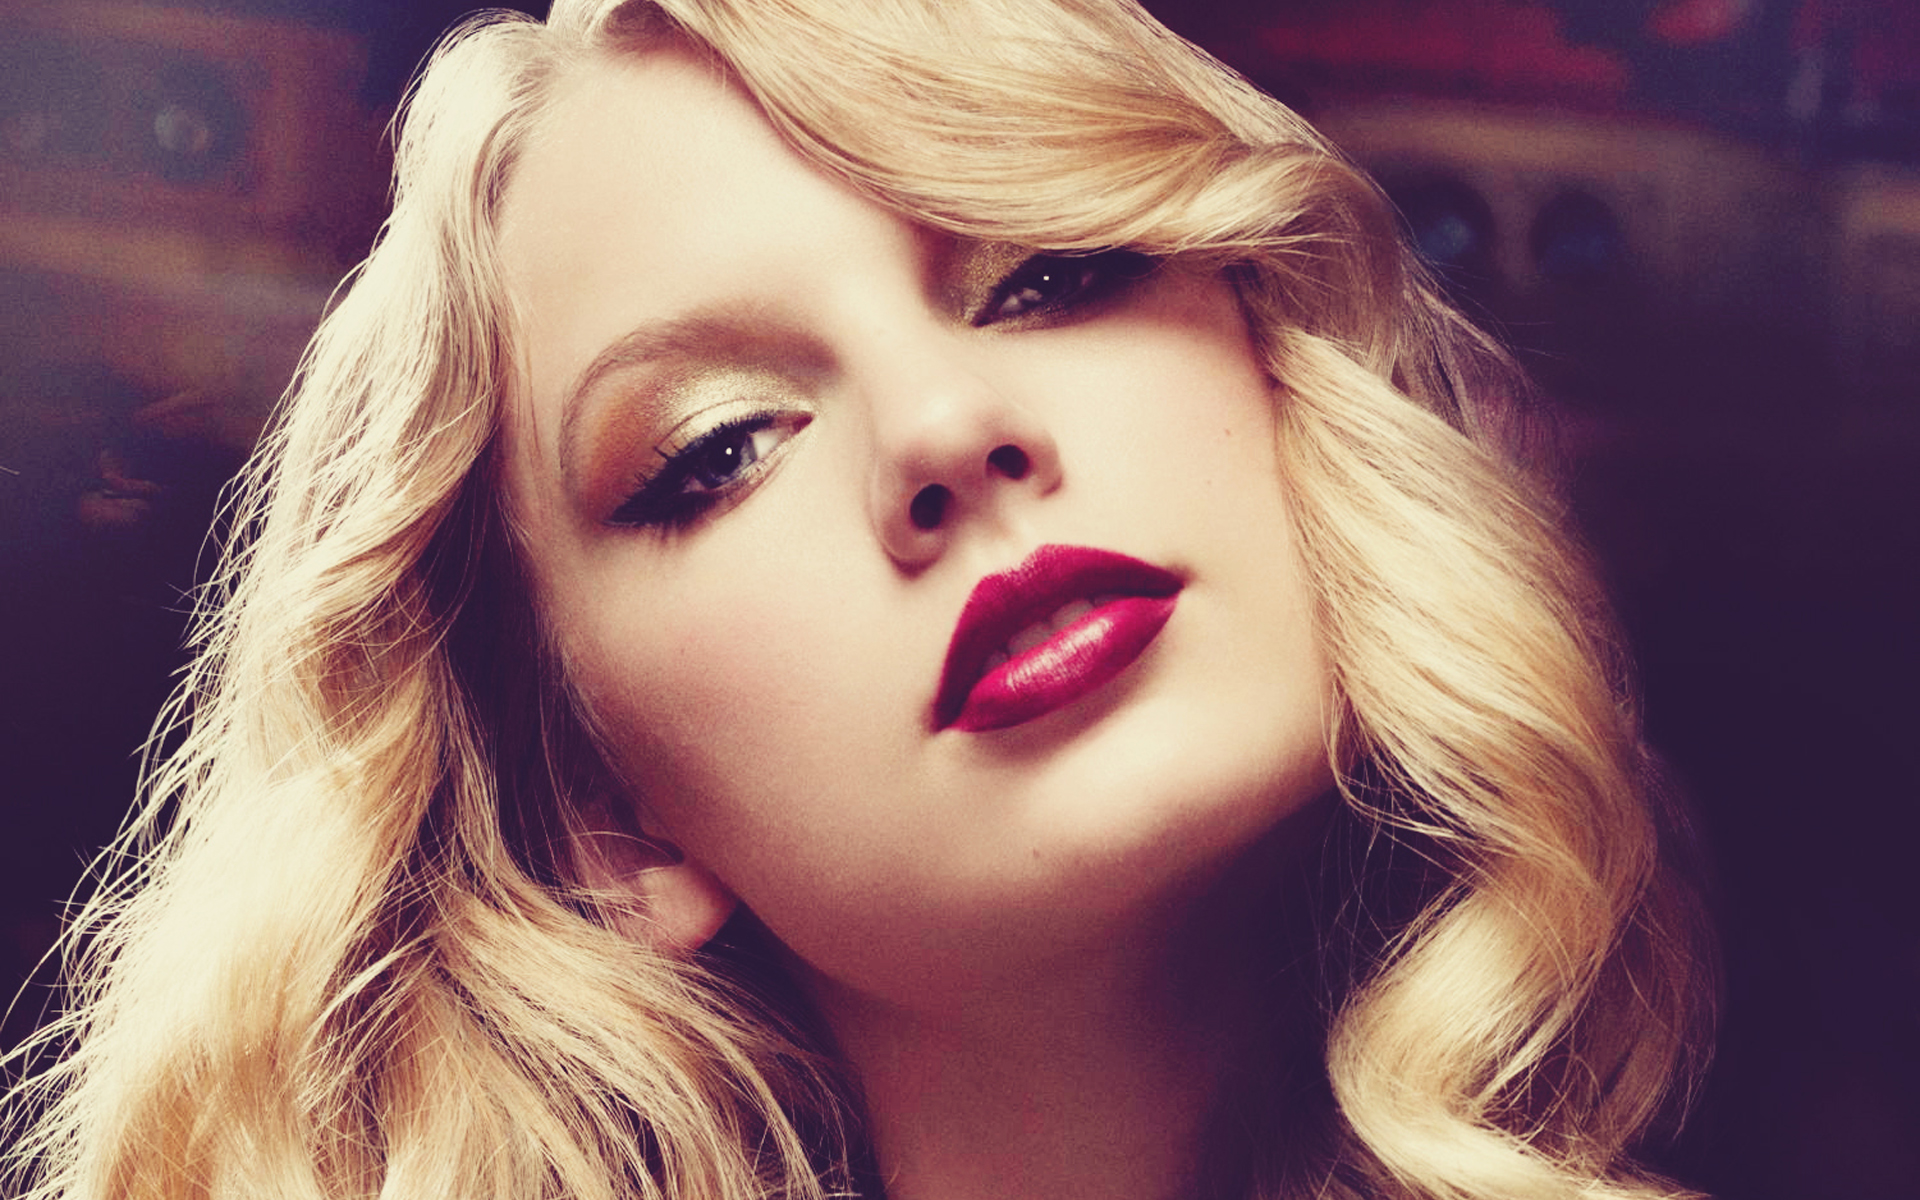 taytay22 images *taylor swift* hd wallpaper and background photos